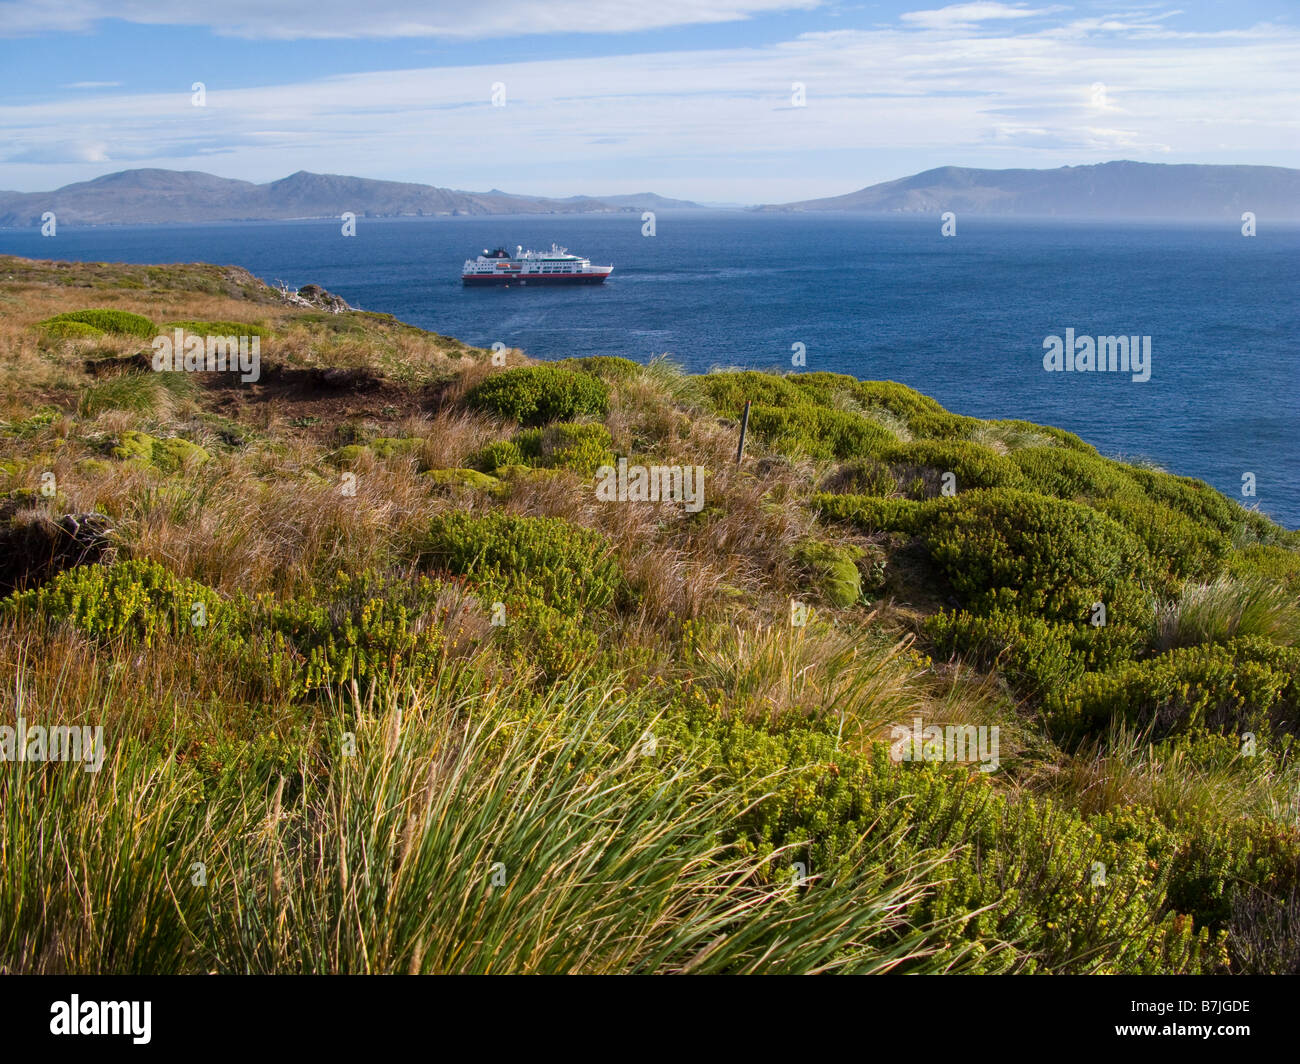 Tourist boat seen from Cape Horn, Patagonia, Chile, South America - Stock Image